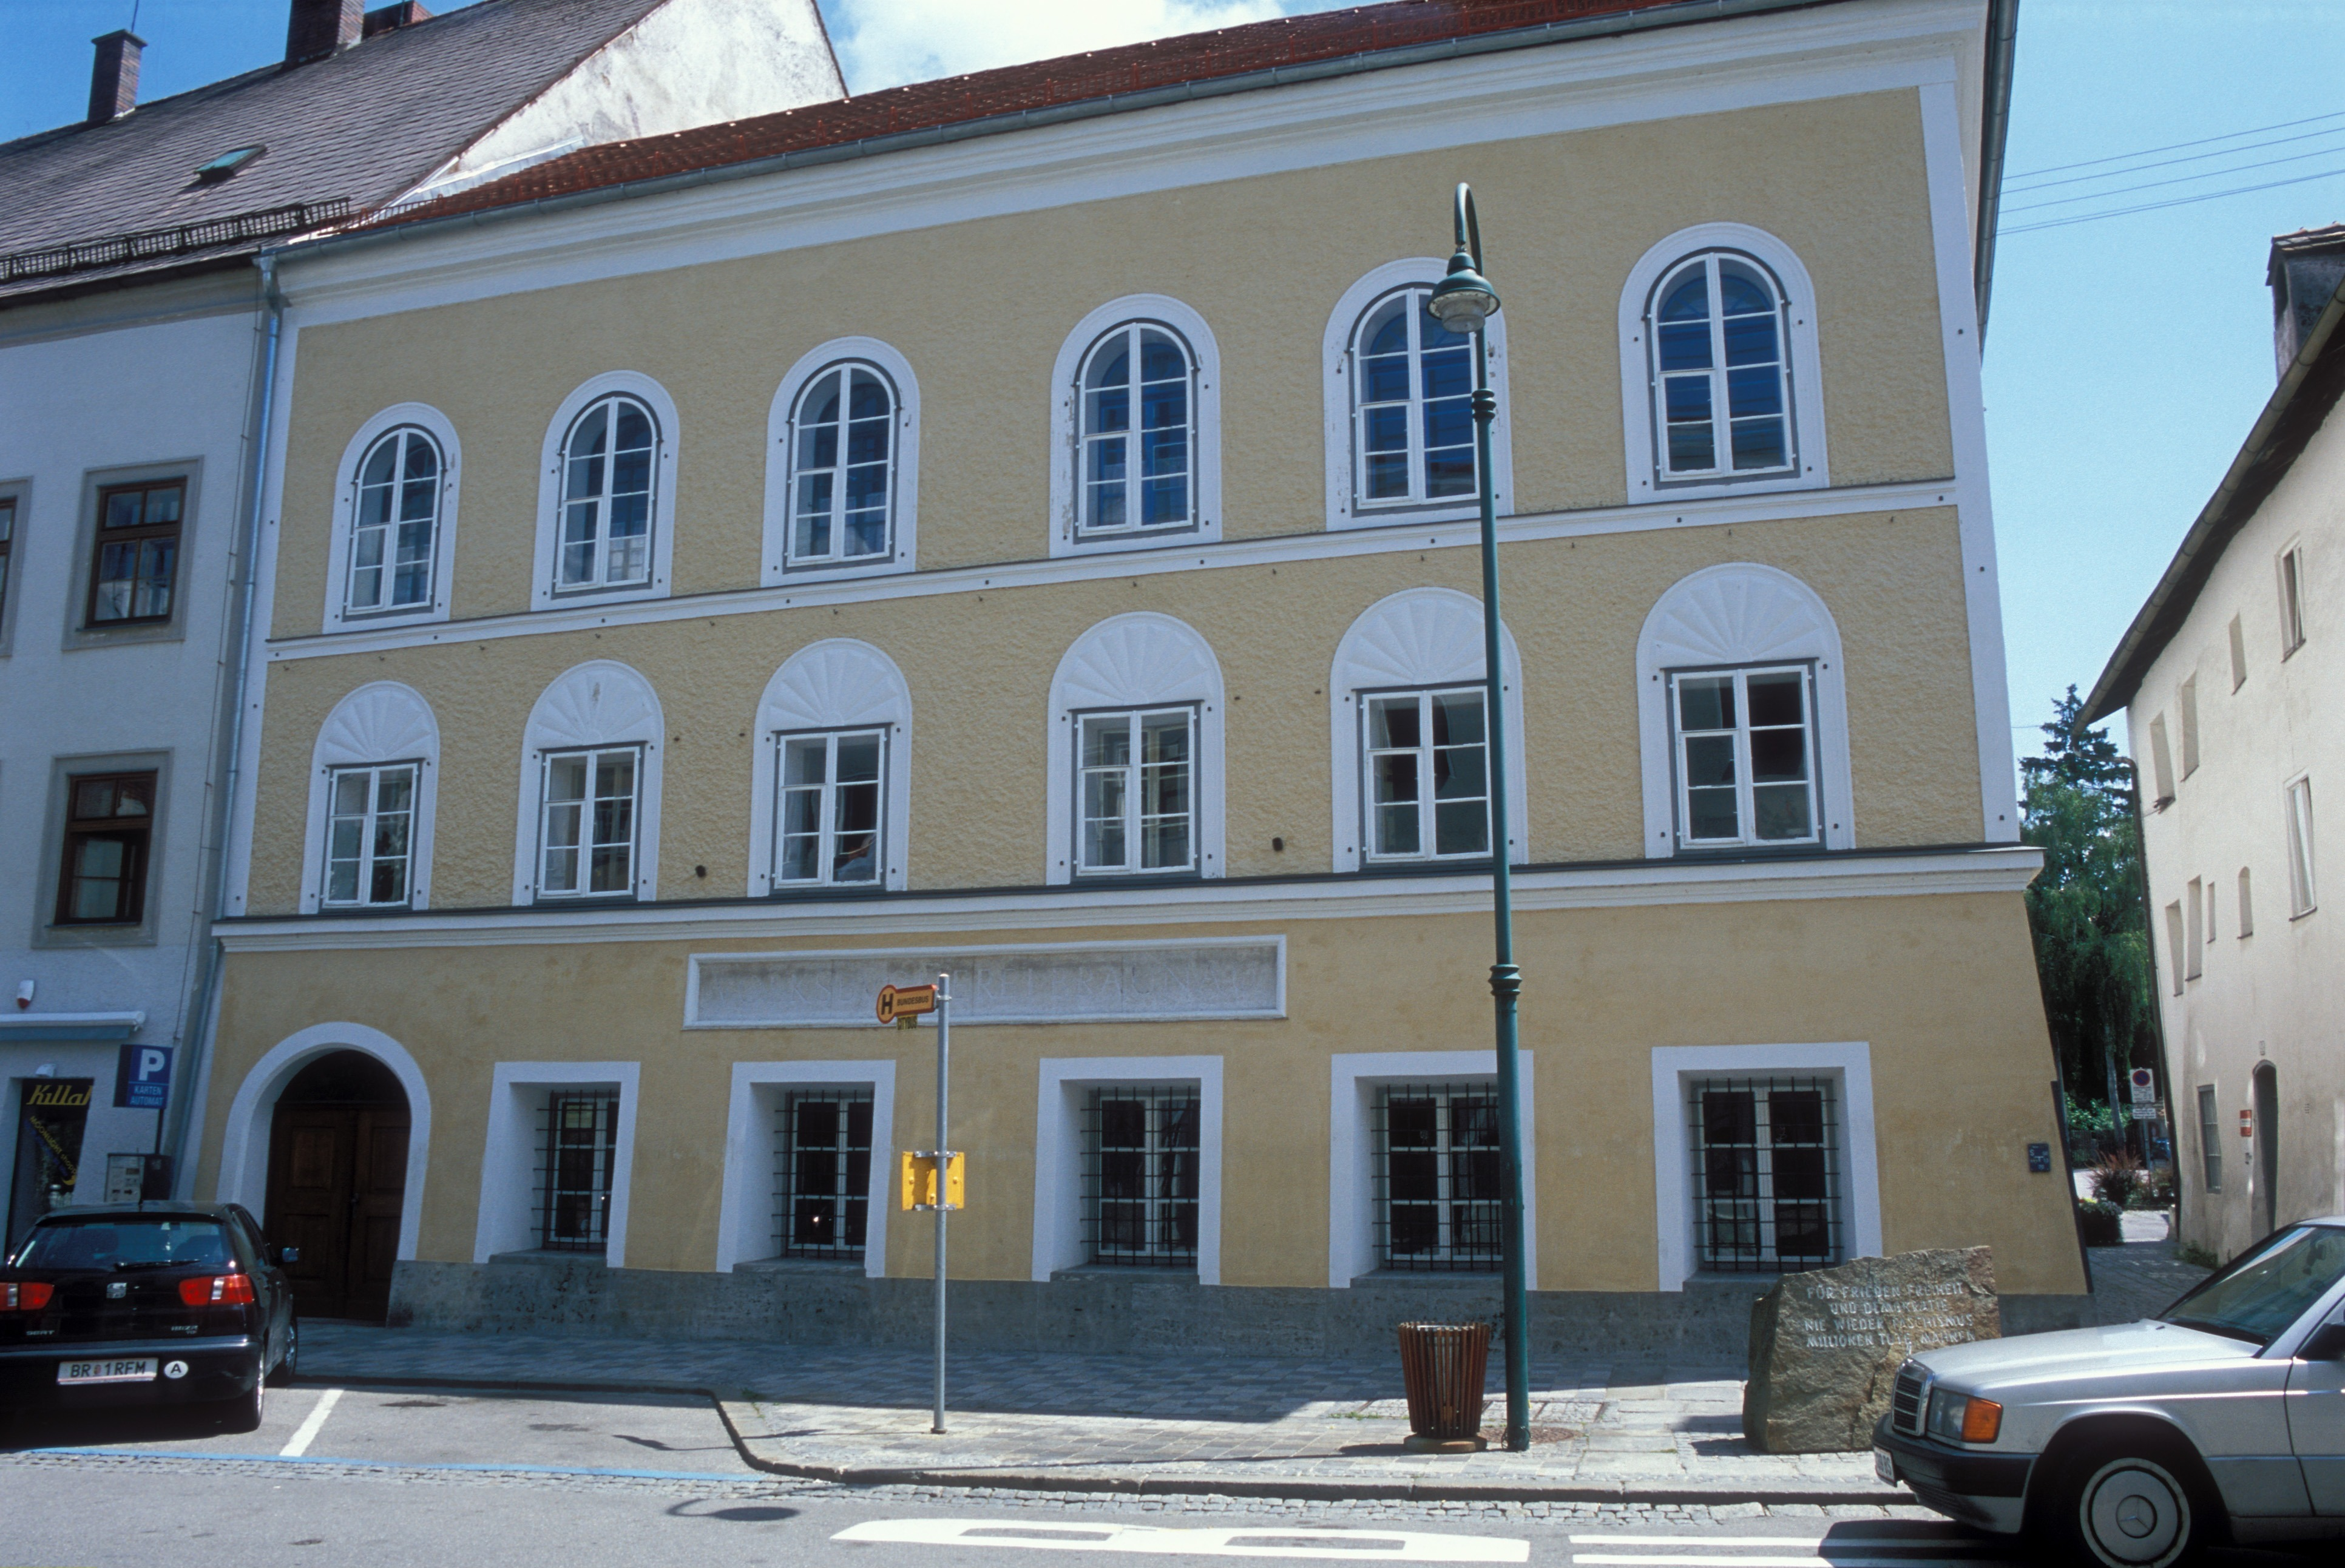 Hitler's place of birth in Braunau, Austria